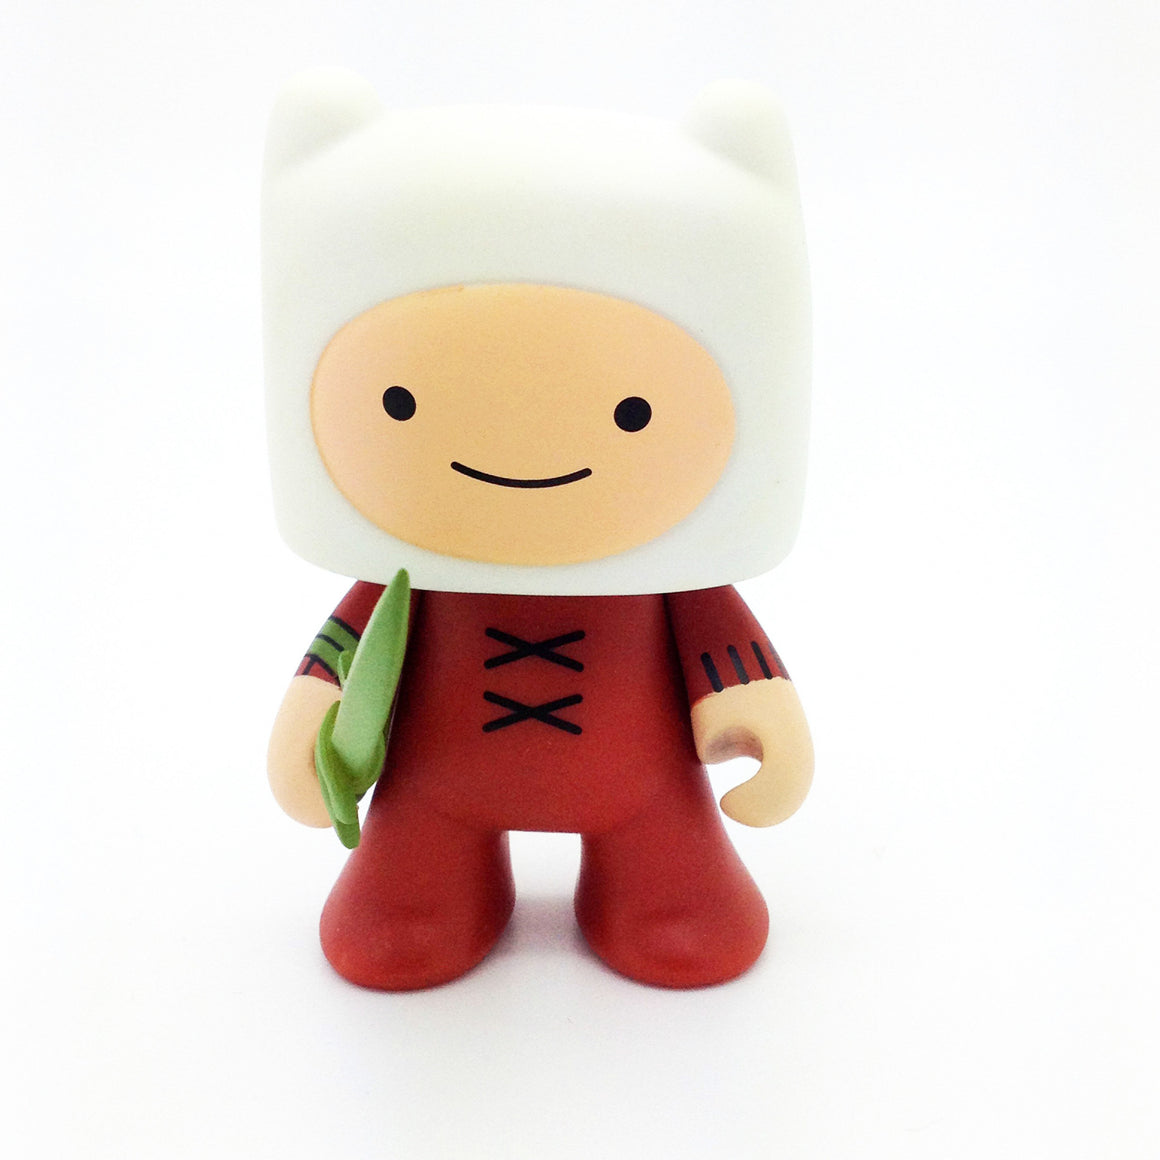 Adventure Time x Kidrobot Series - Finn with Grass Sword - Mindzai  - 1